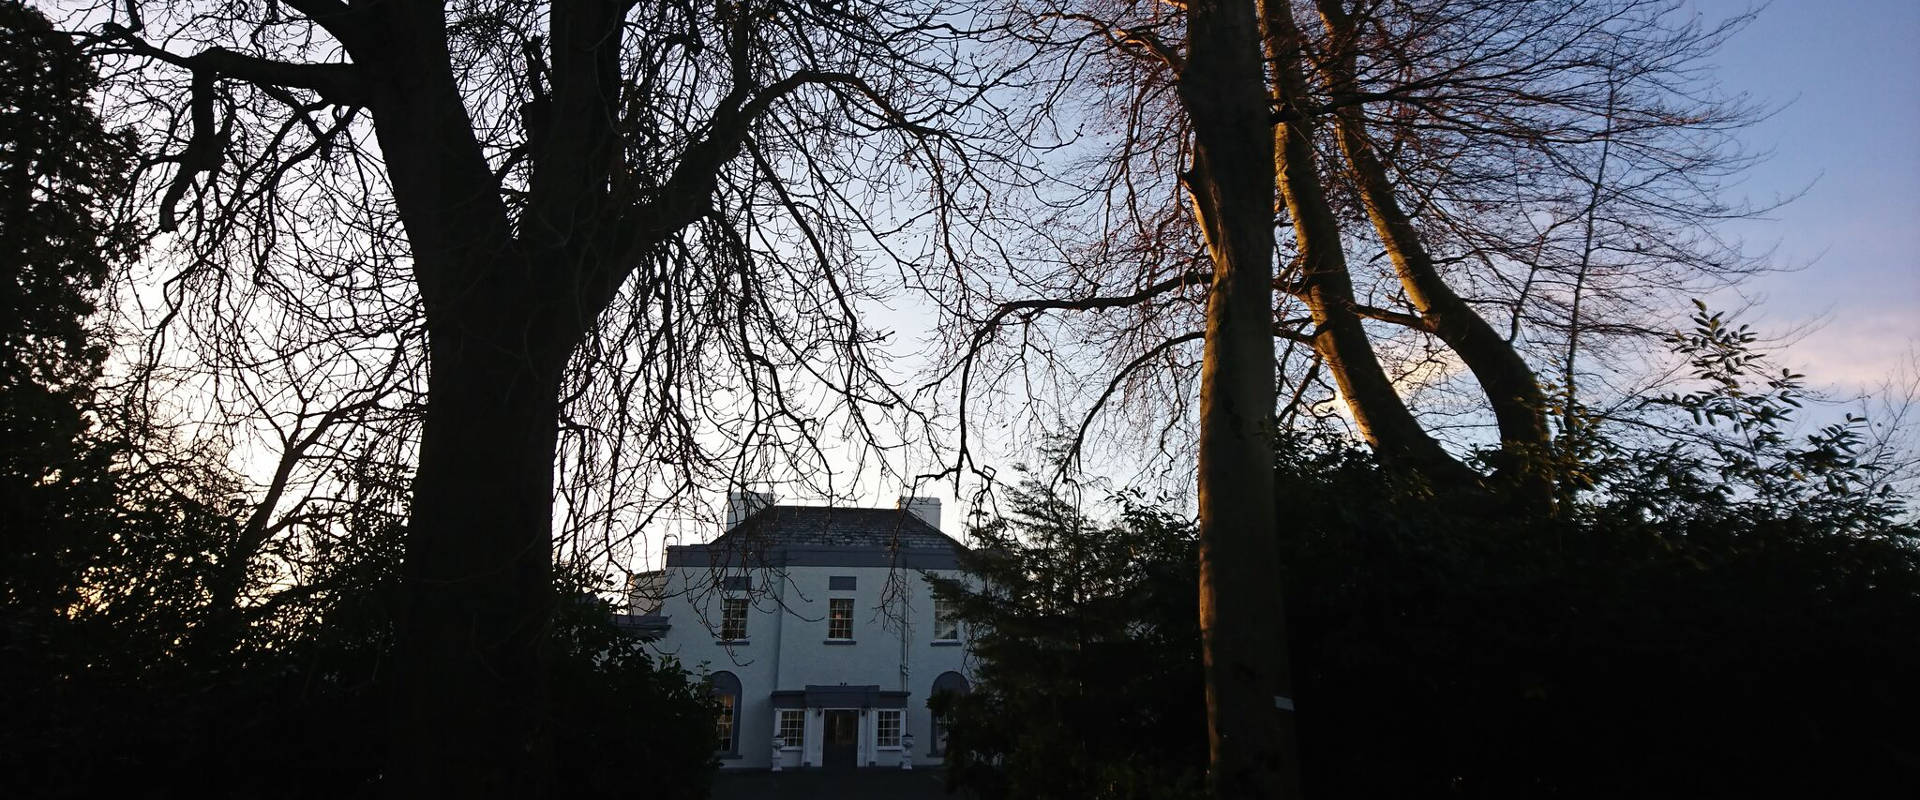 Leixlip Manor Hotel Evening